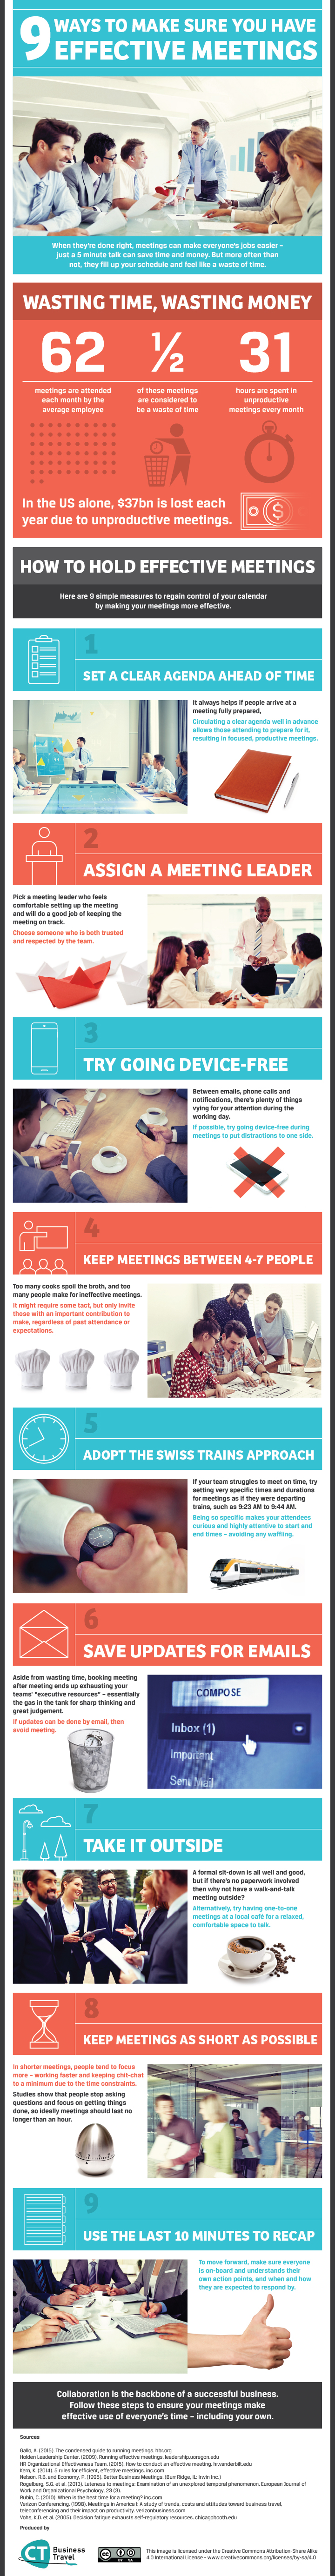 9 Ways to Make Sure You Have Effective Meetings